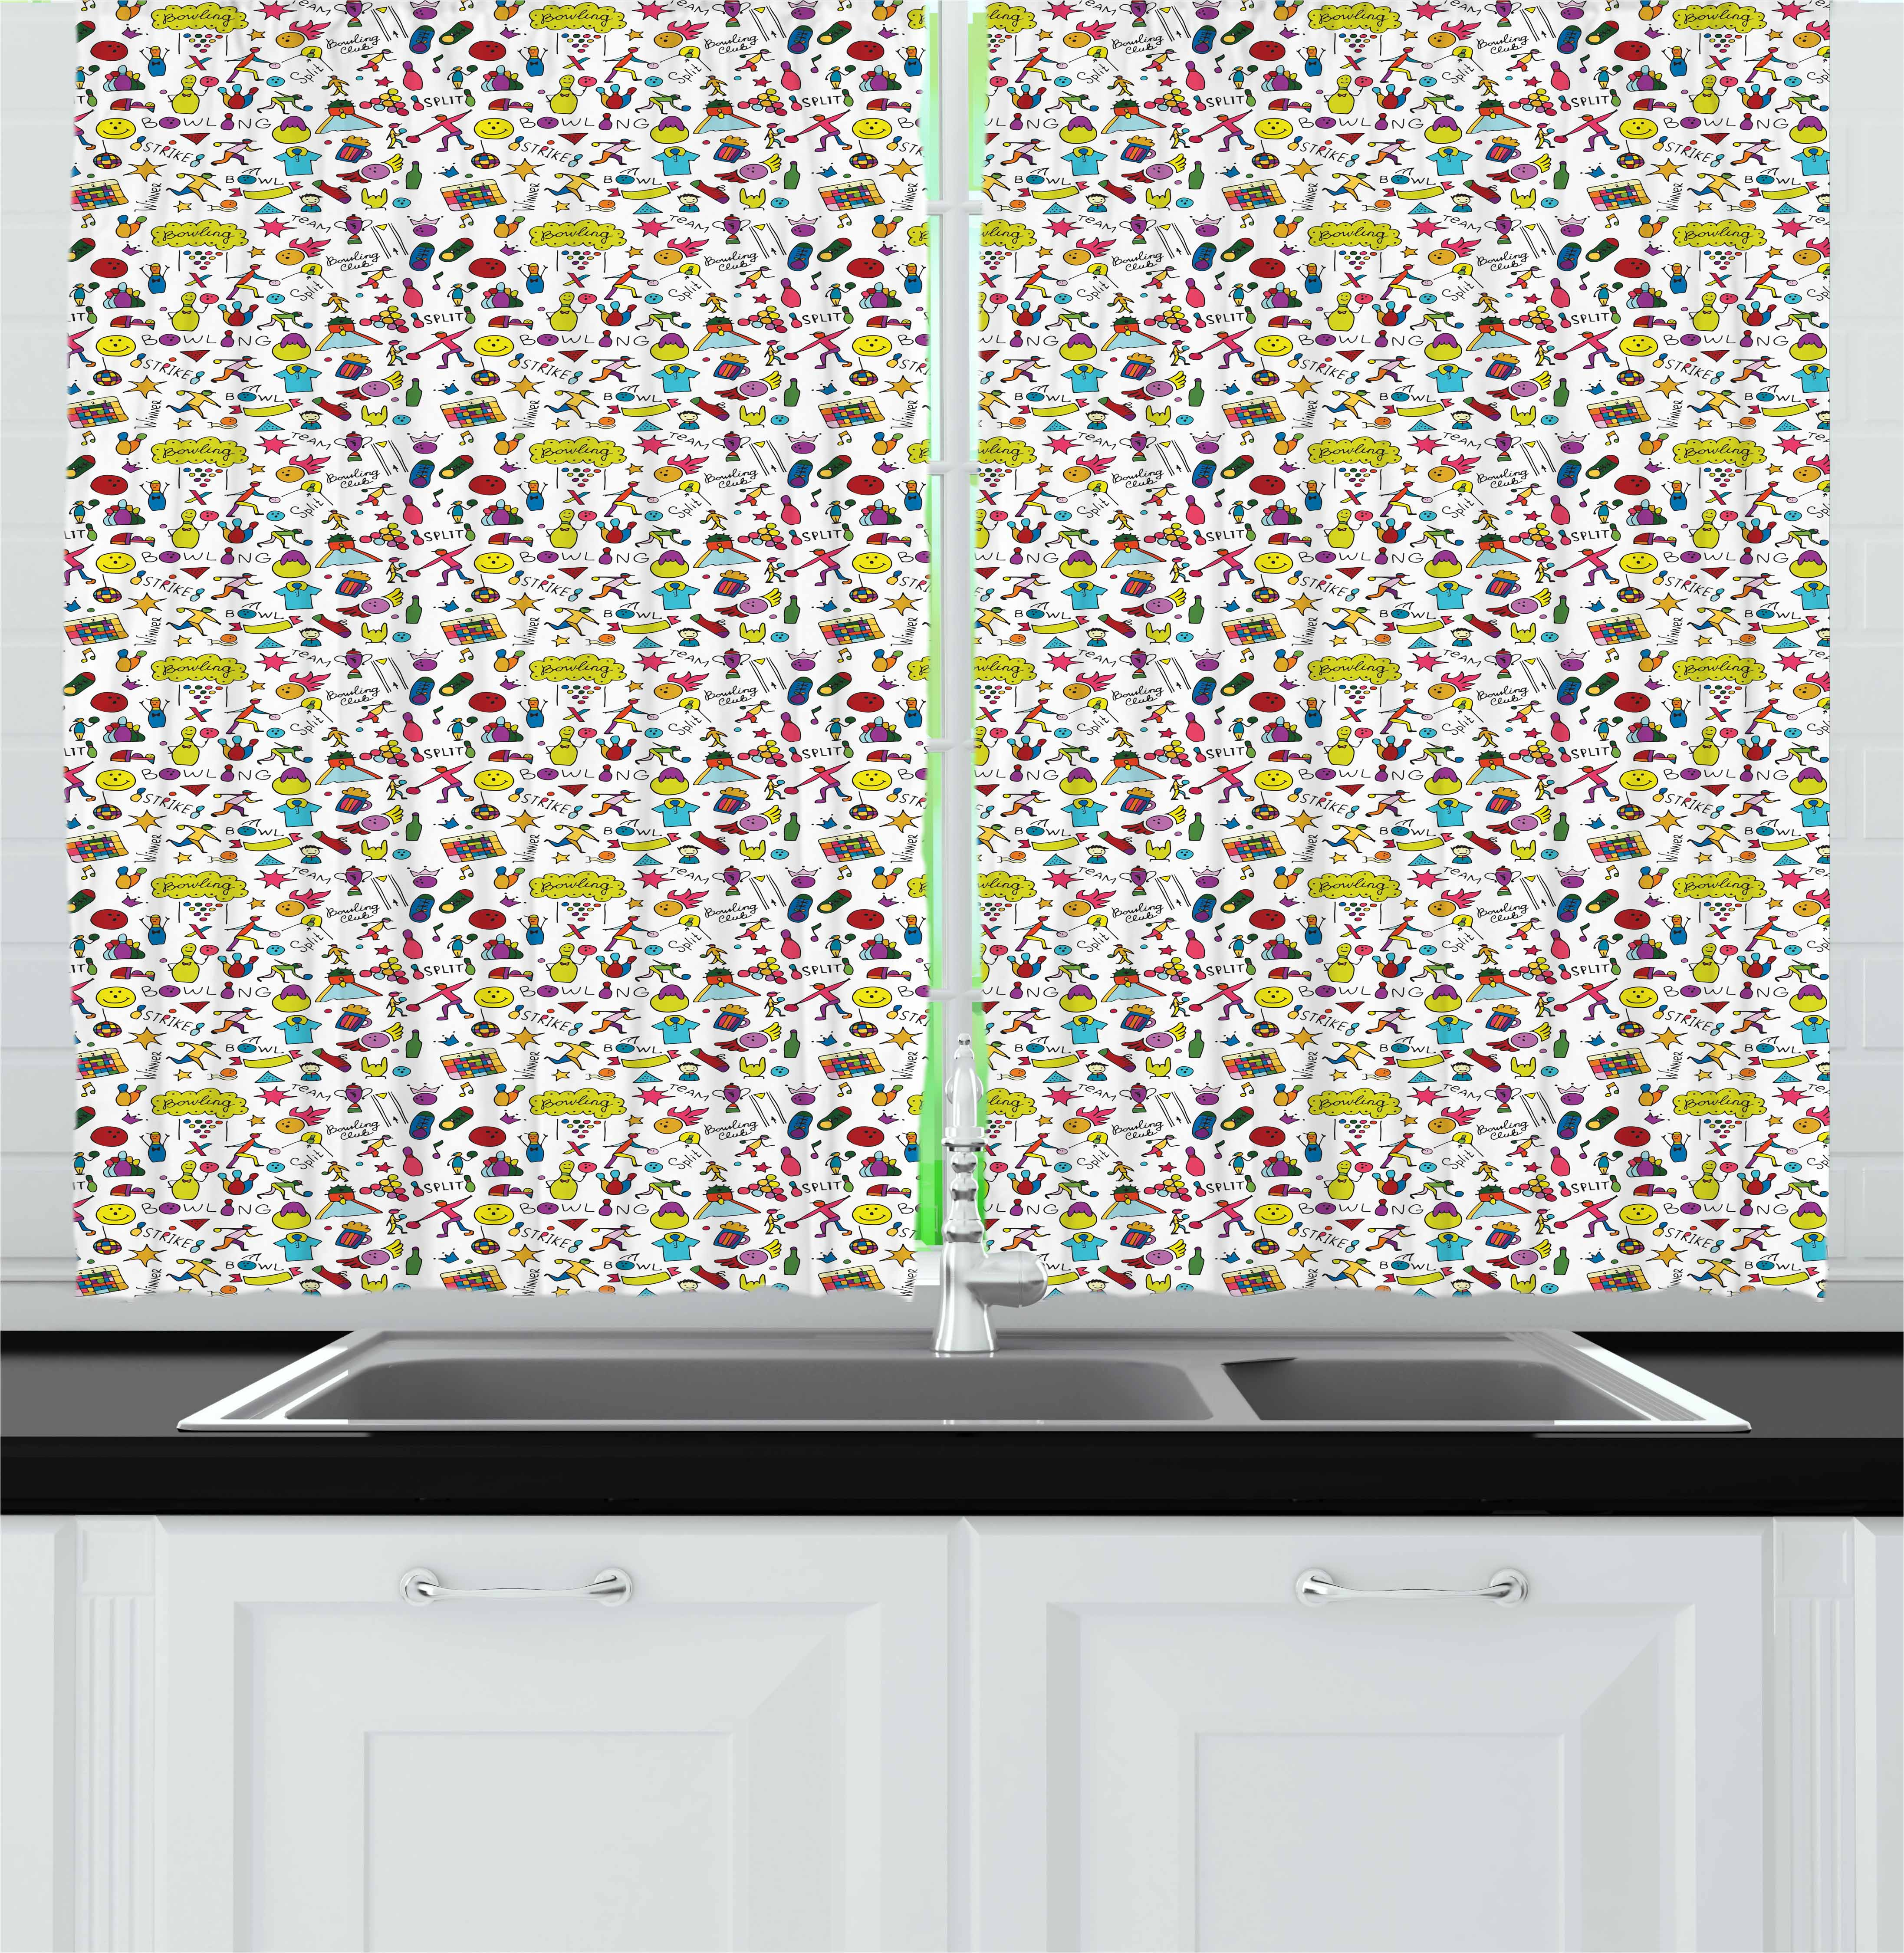 Bowling Curtains 2 Panels Set, Cartoon Style Cheerful Hobby Pattern for Toddler and Children with Colorful Design, Window Drapes for Living Room Bedroom, 55W X 39L Inches, Multicolor, by Ambesonne